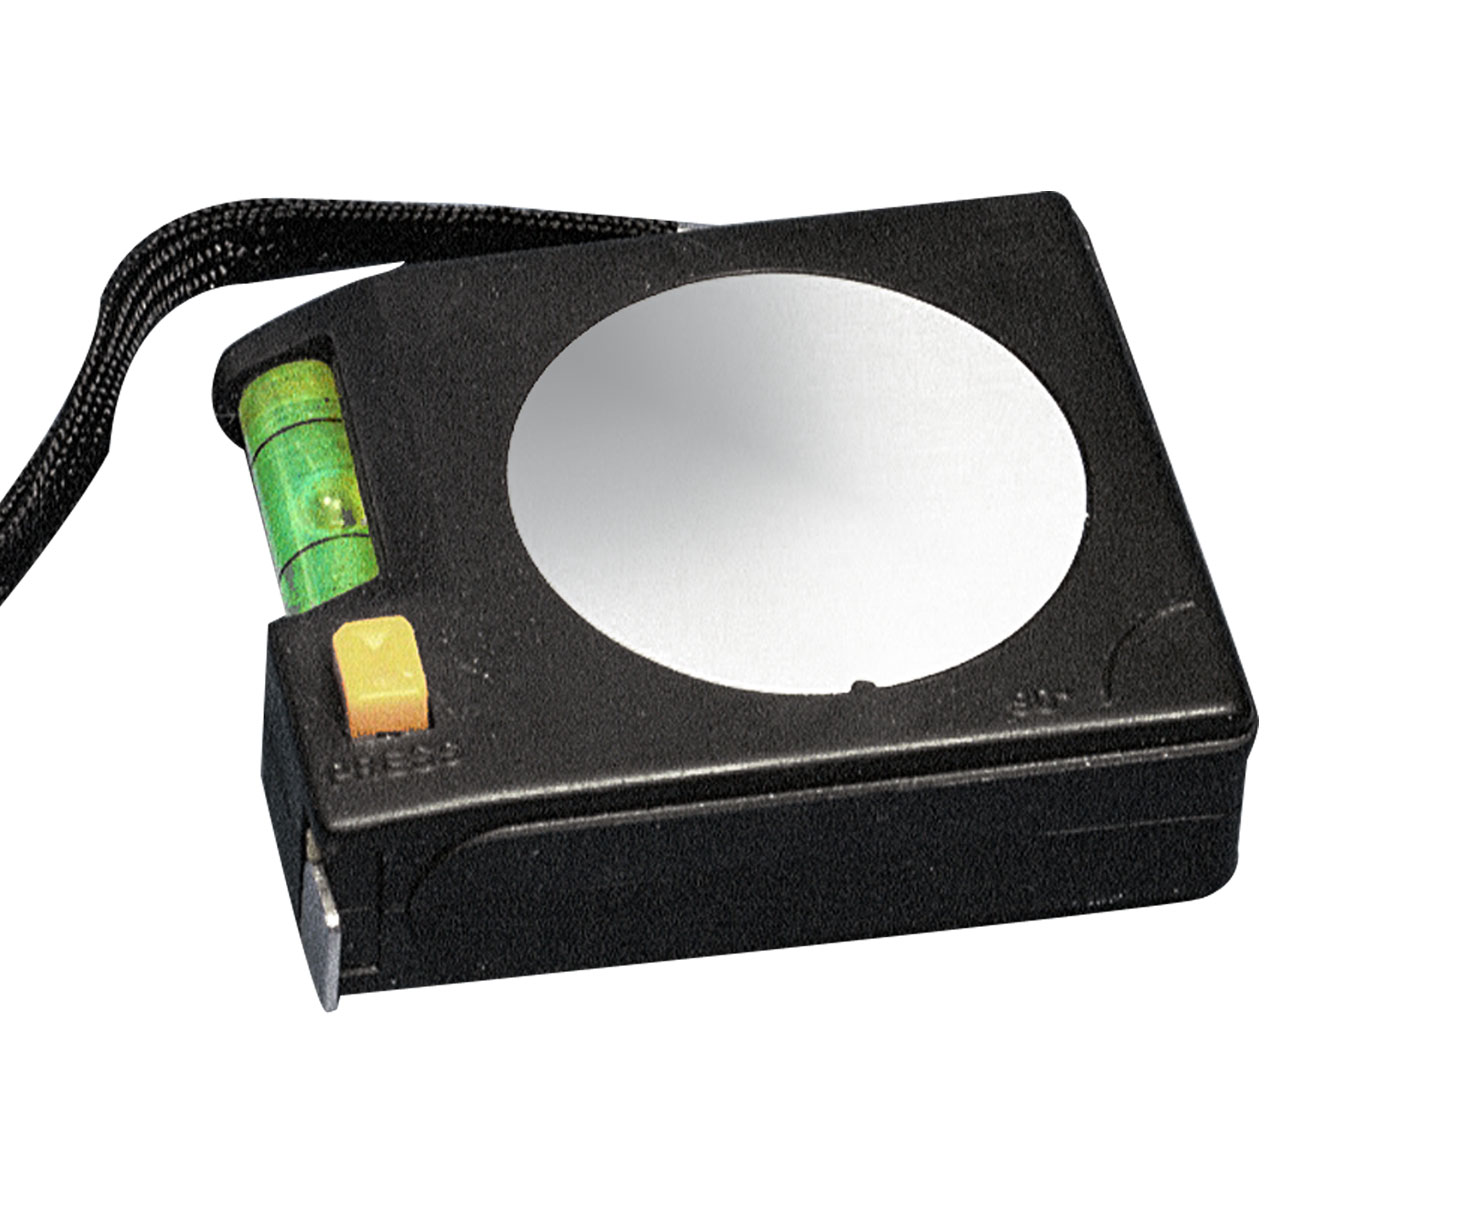 BLACK 2M TAPE MEASURE WITH SPIRIT LEVEL